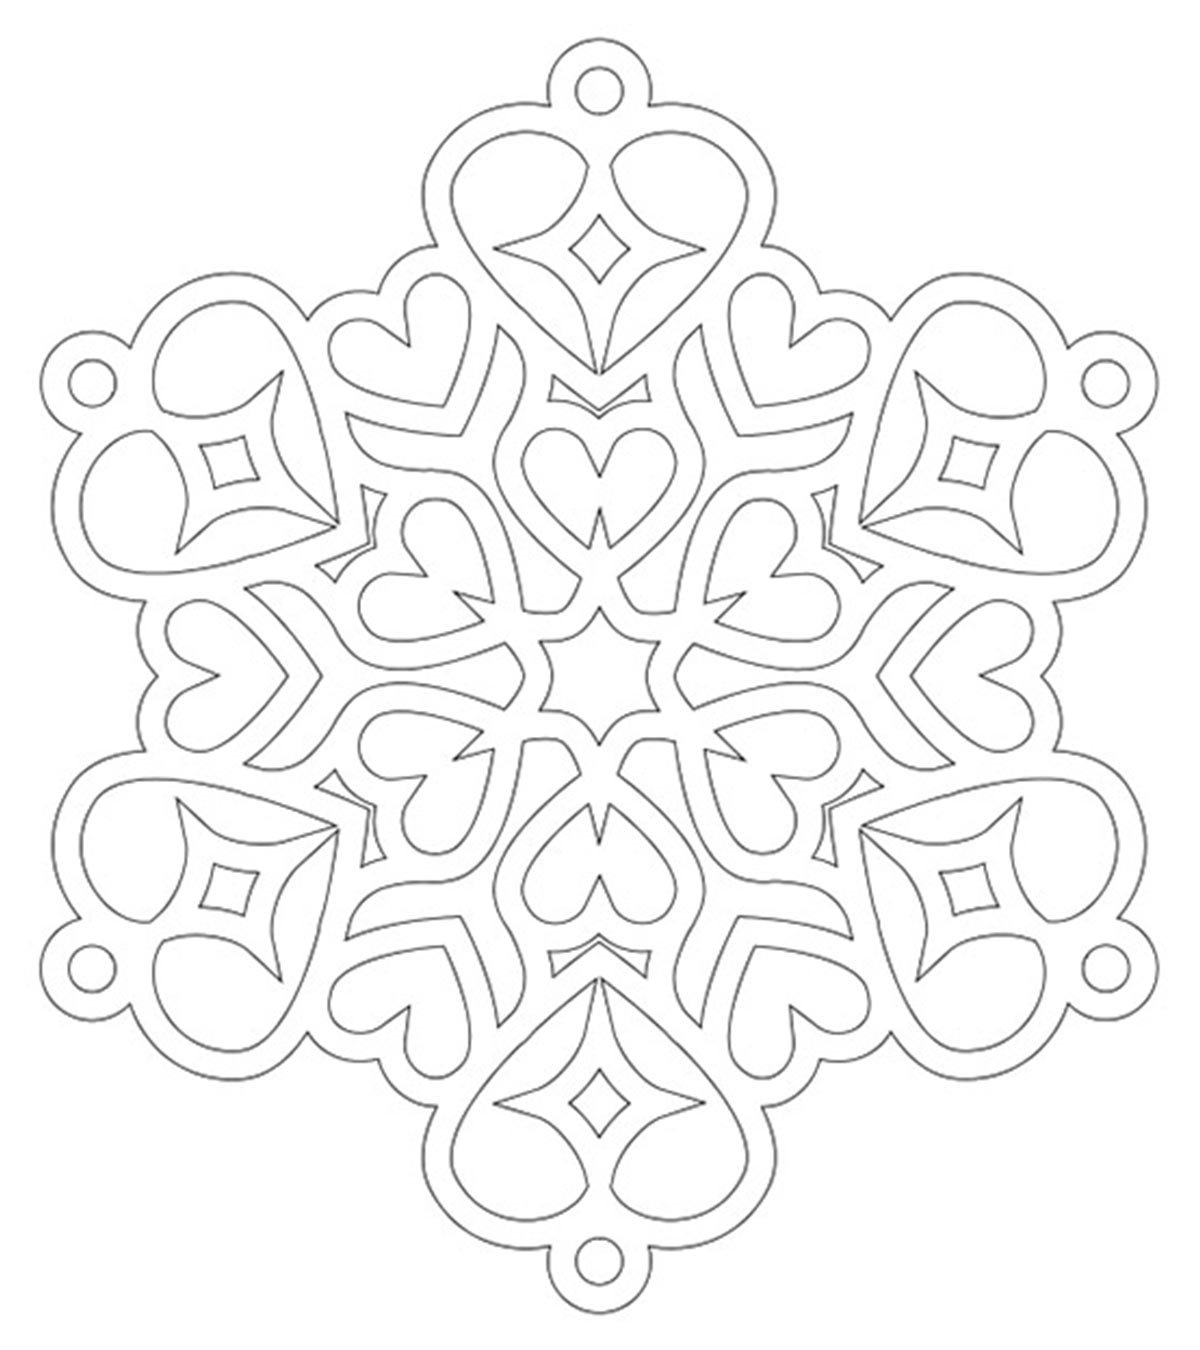 - Top 20 Snowflake Coloring Pages For Your Little Ones